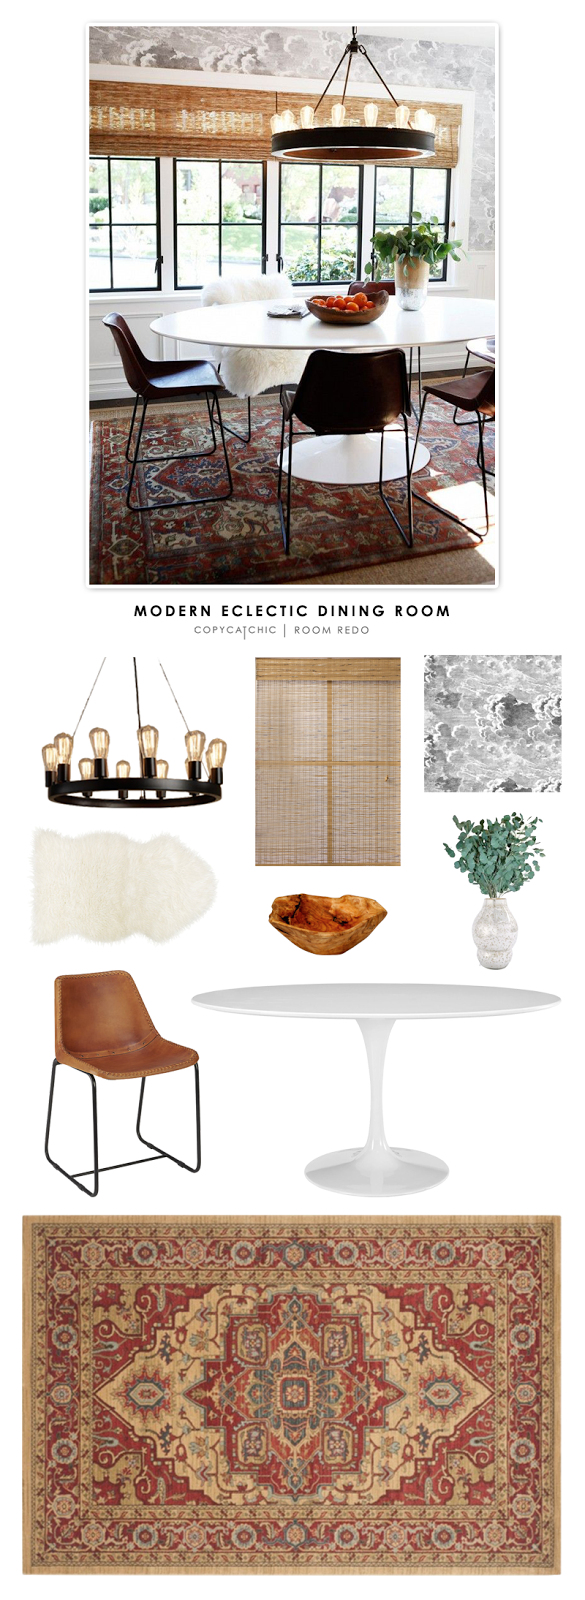 copy cat chic room redo modern eclectic dining room